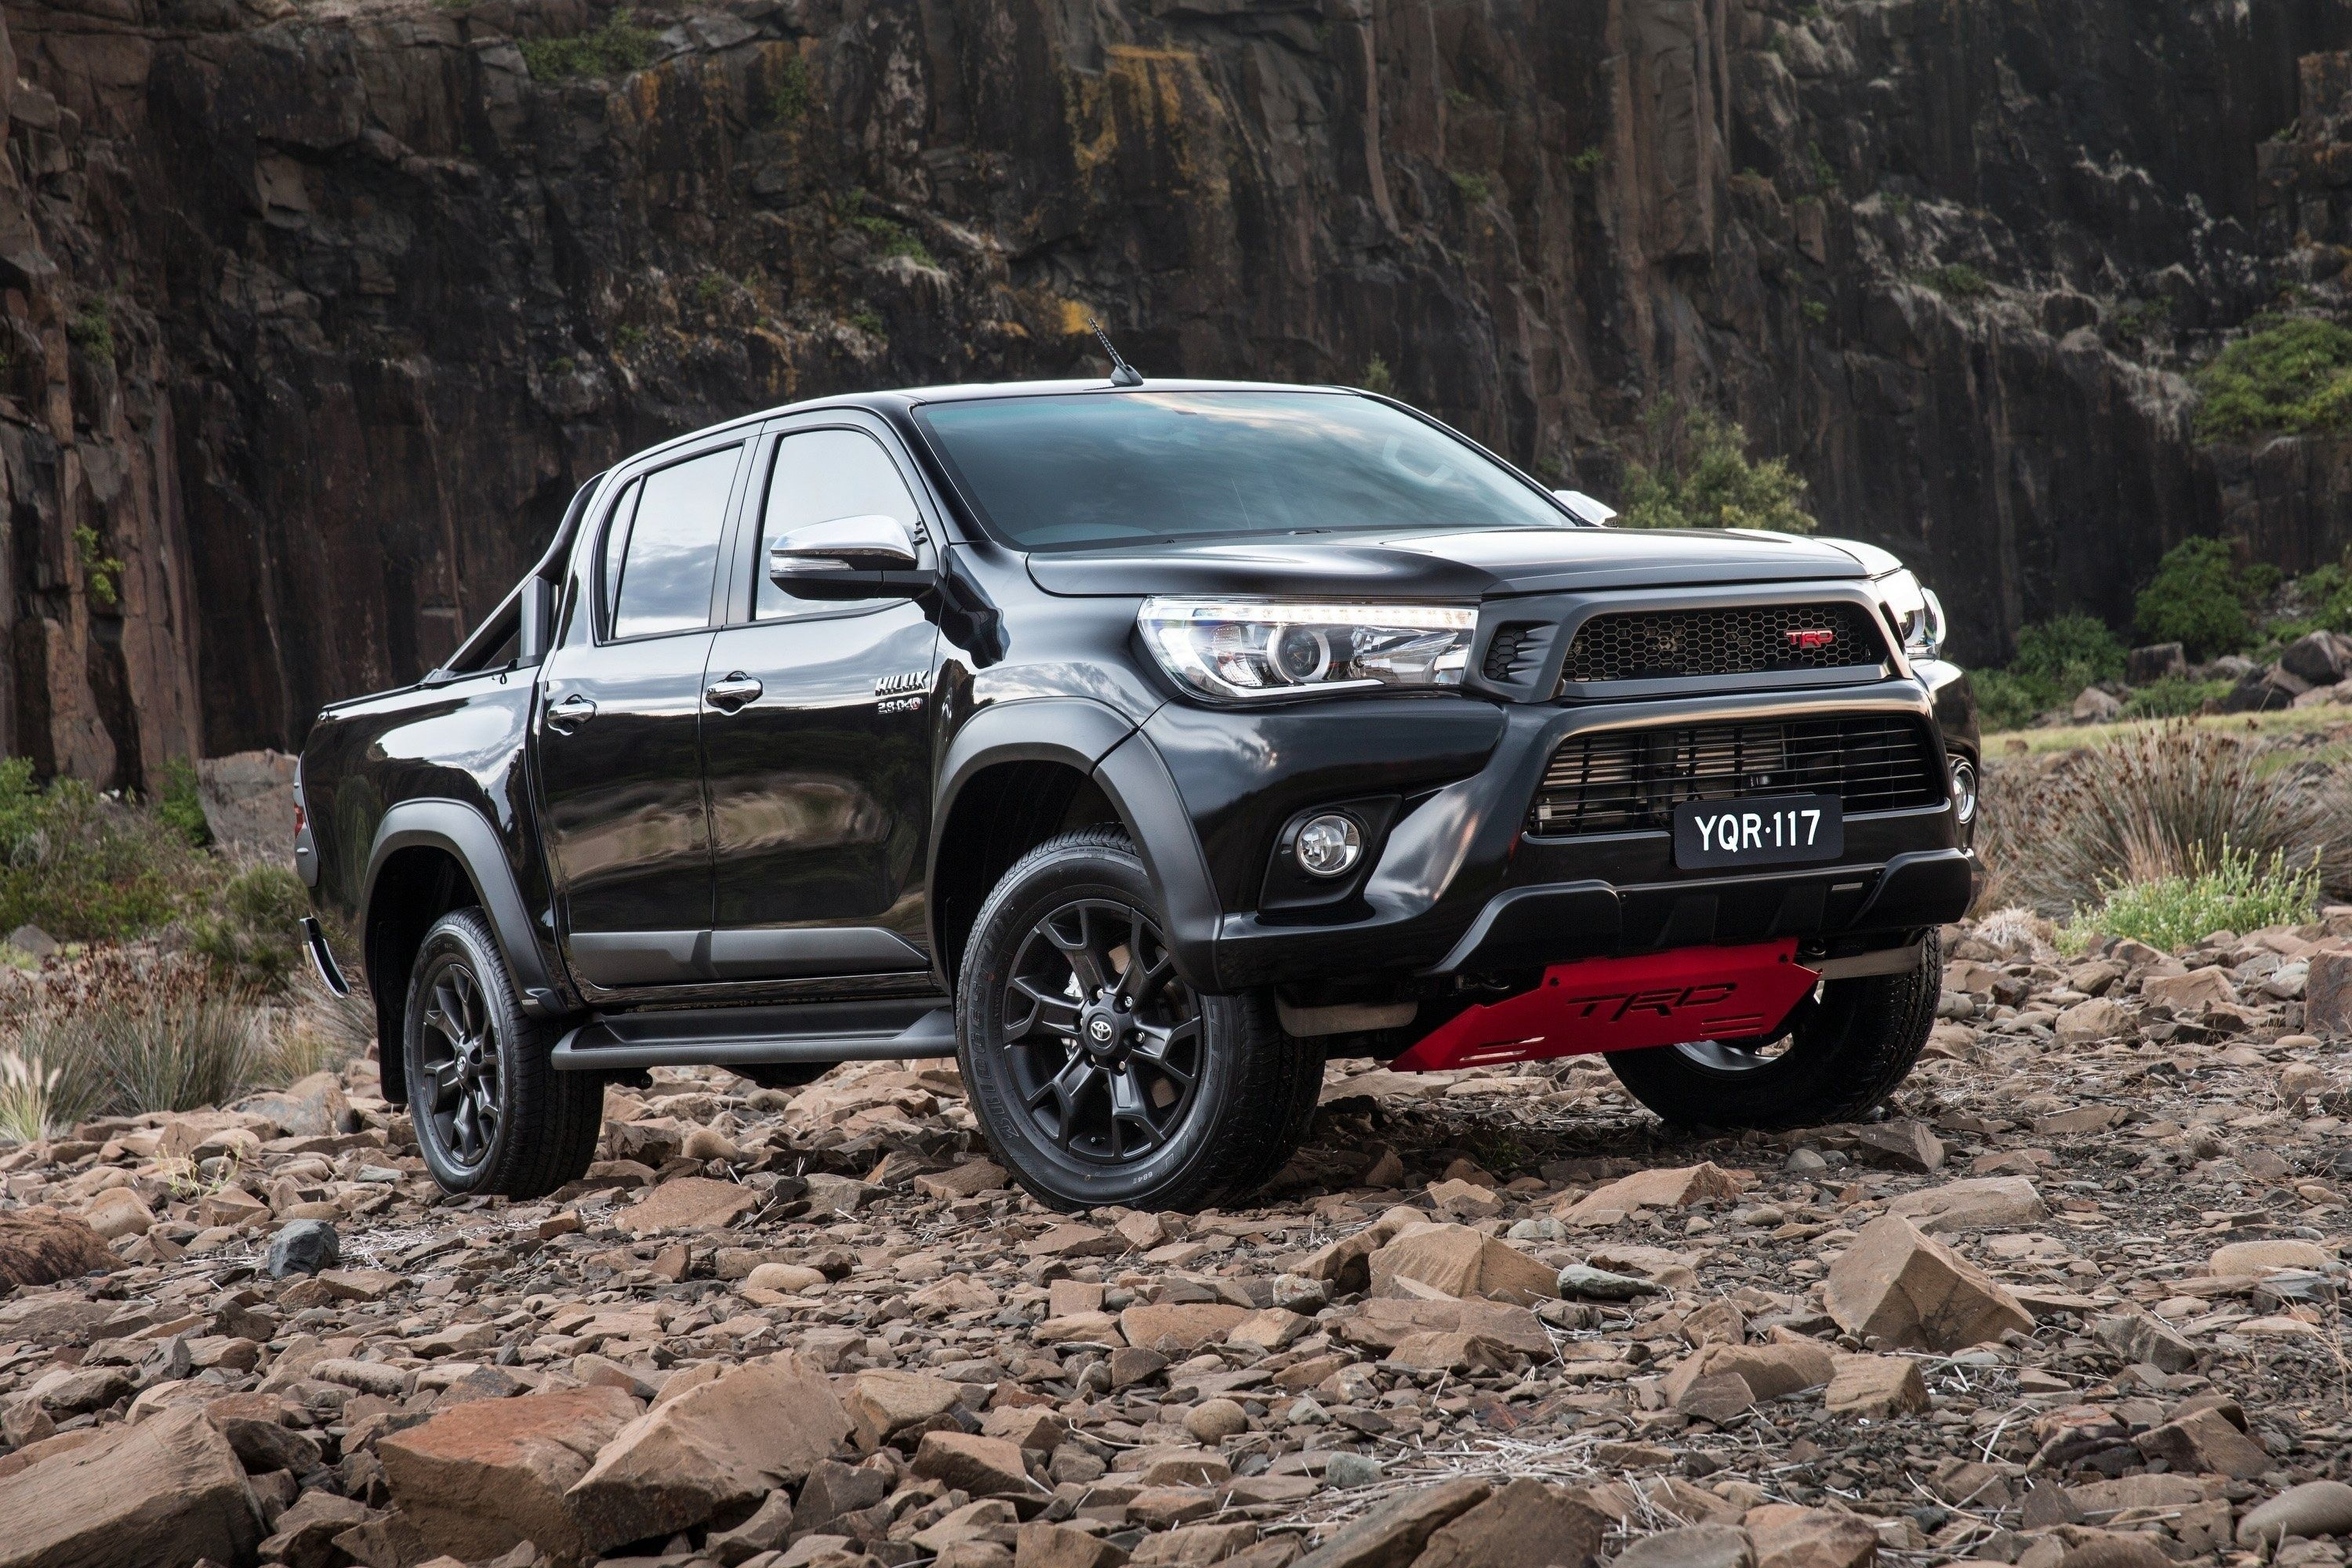 68 The Best 2019 Toyota Hilux Spy Shots Performance